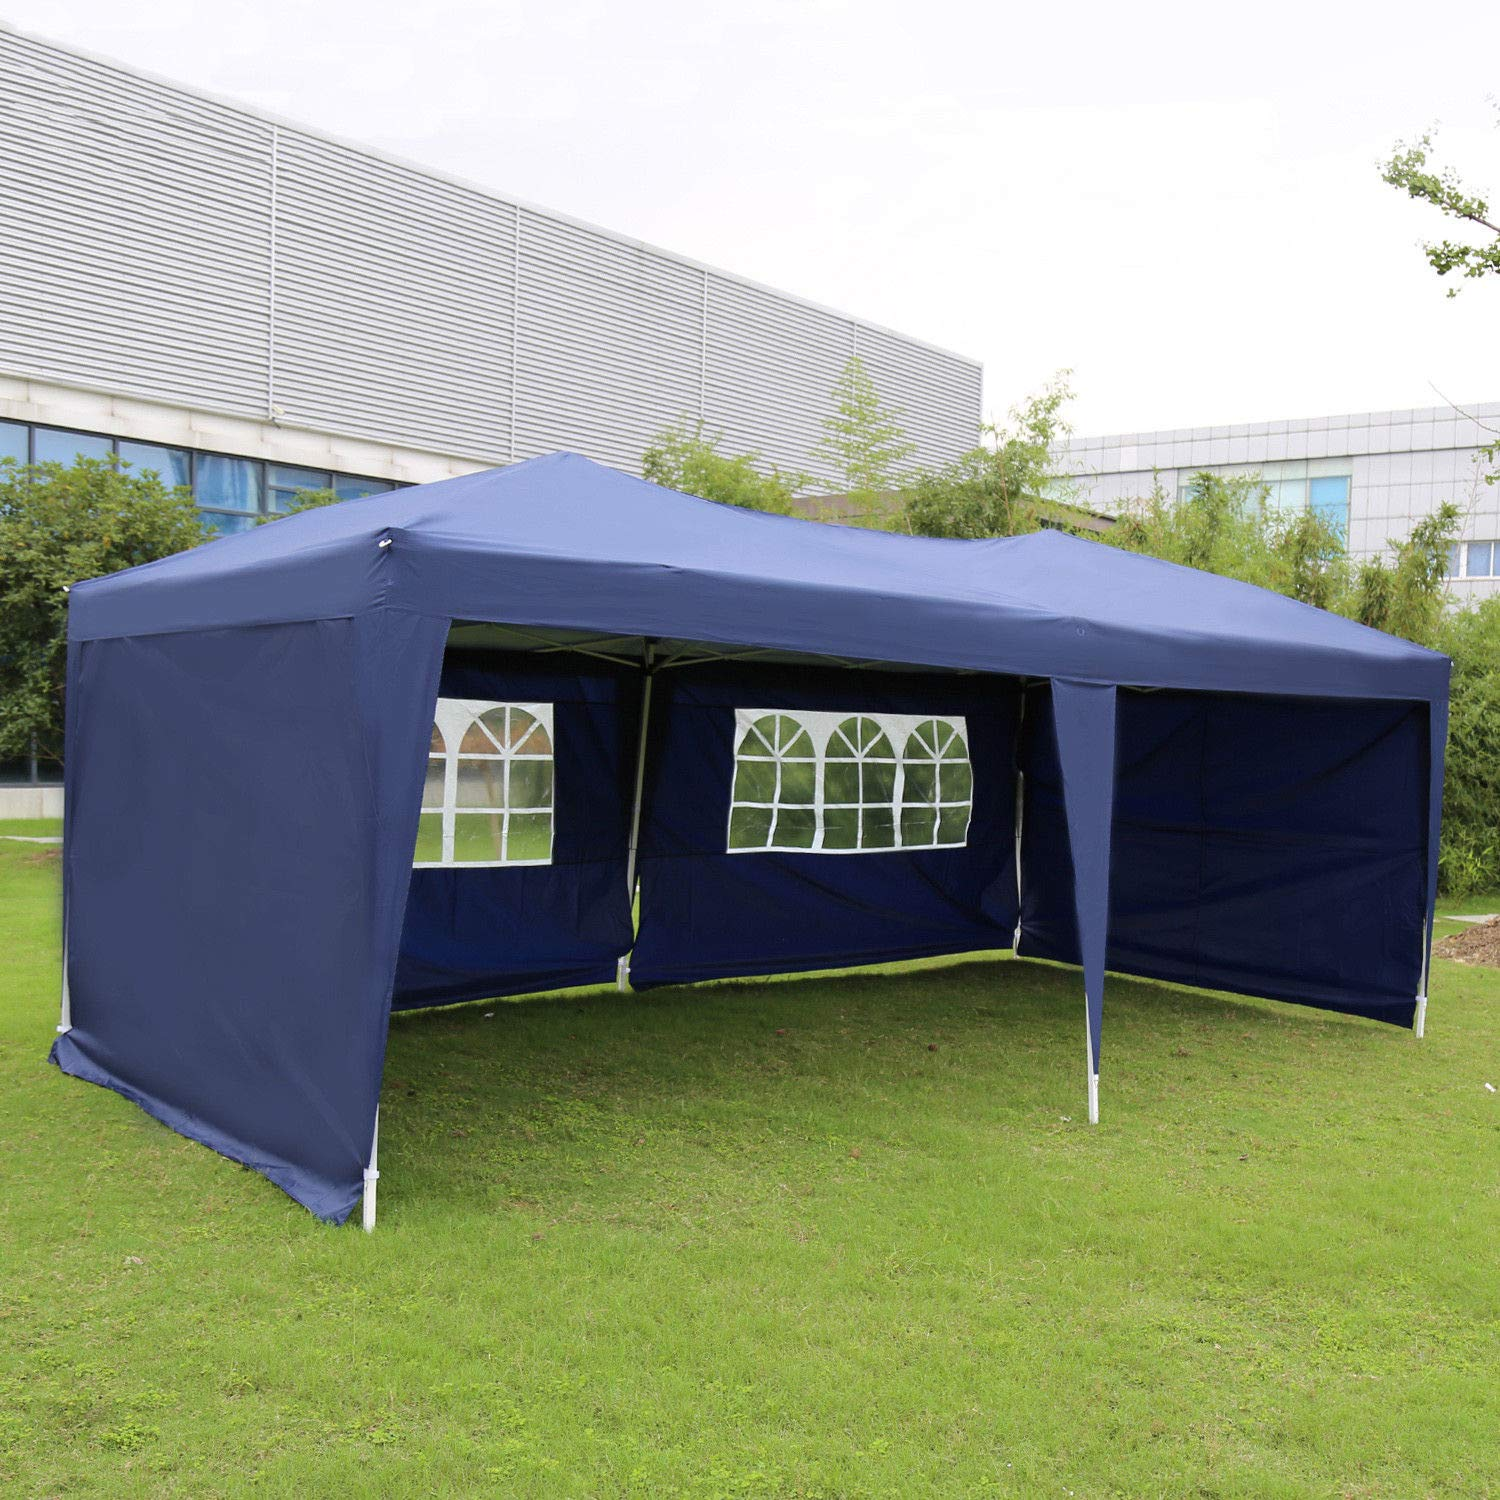 Kinbor Outdoor Portable Adjustable Instant Pop Up Gazebo Canopy Tent by Kinbor (Image #2)